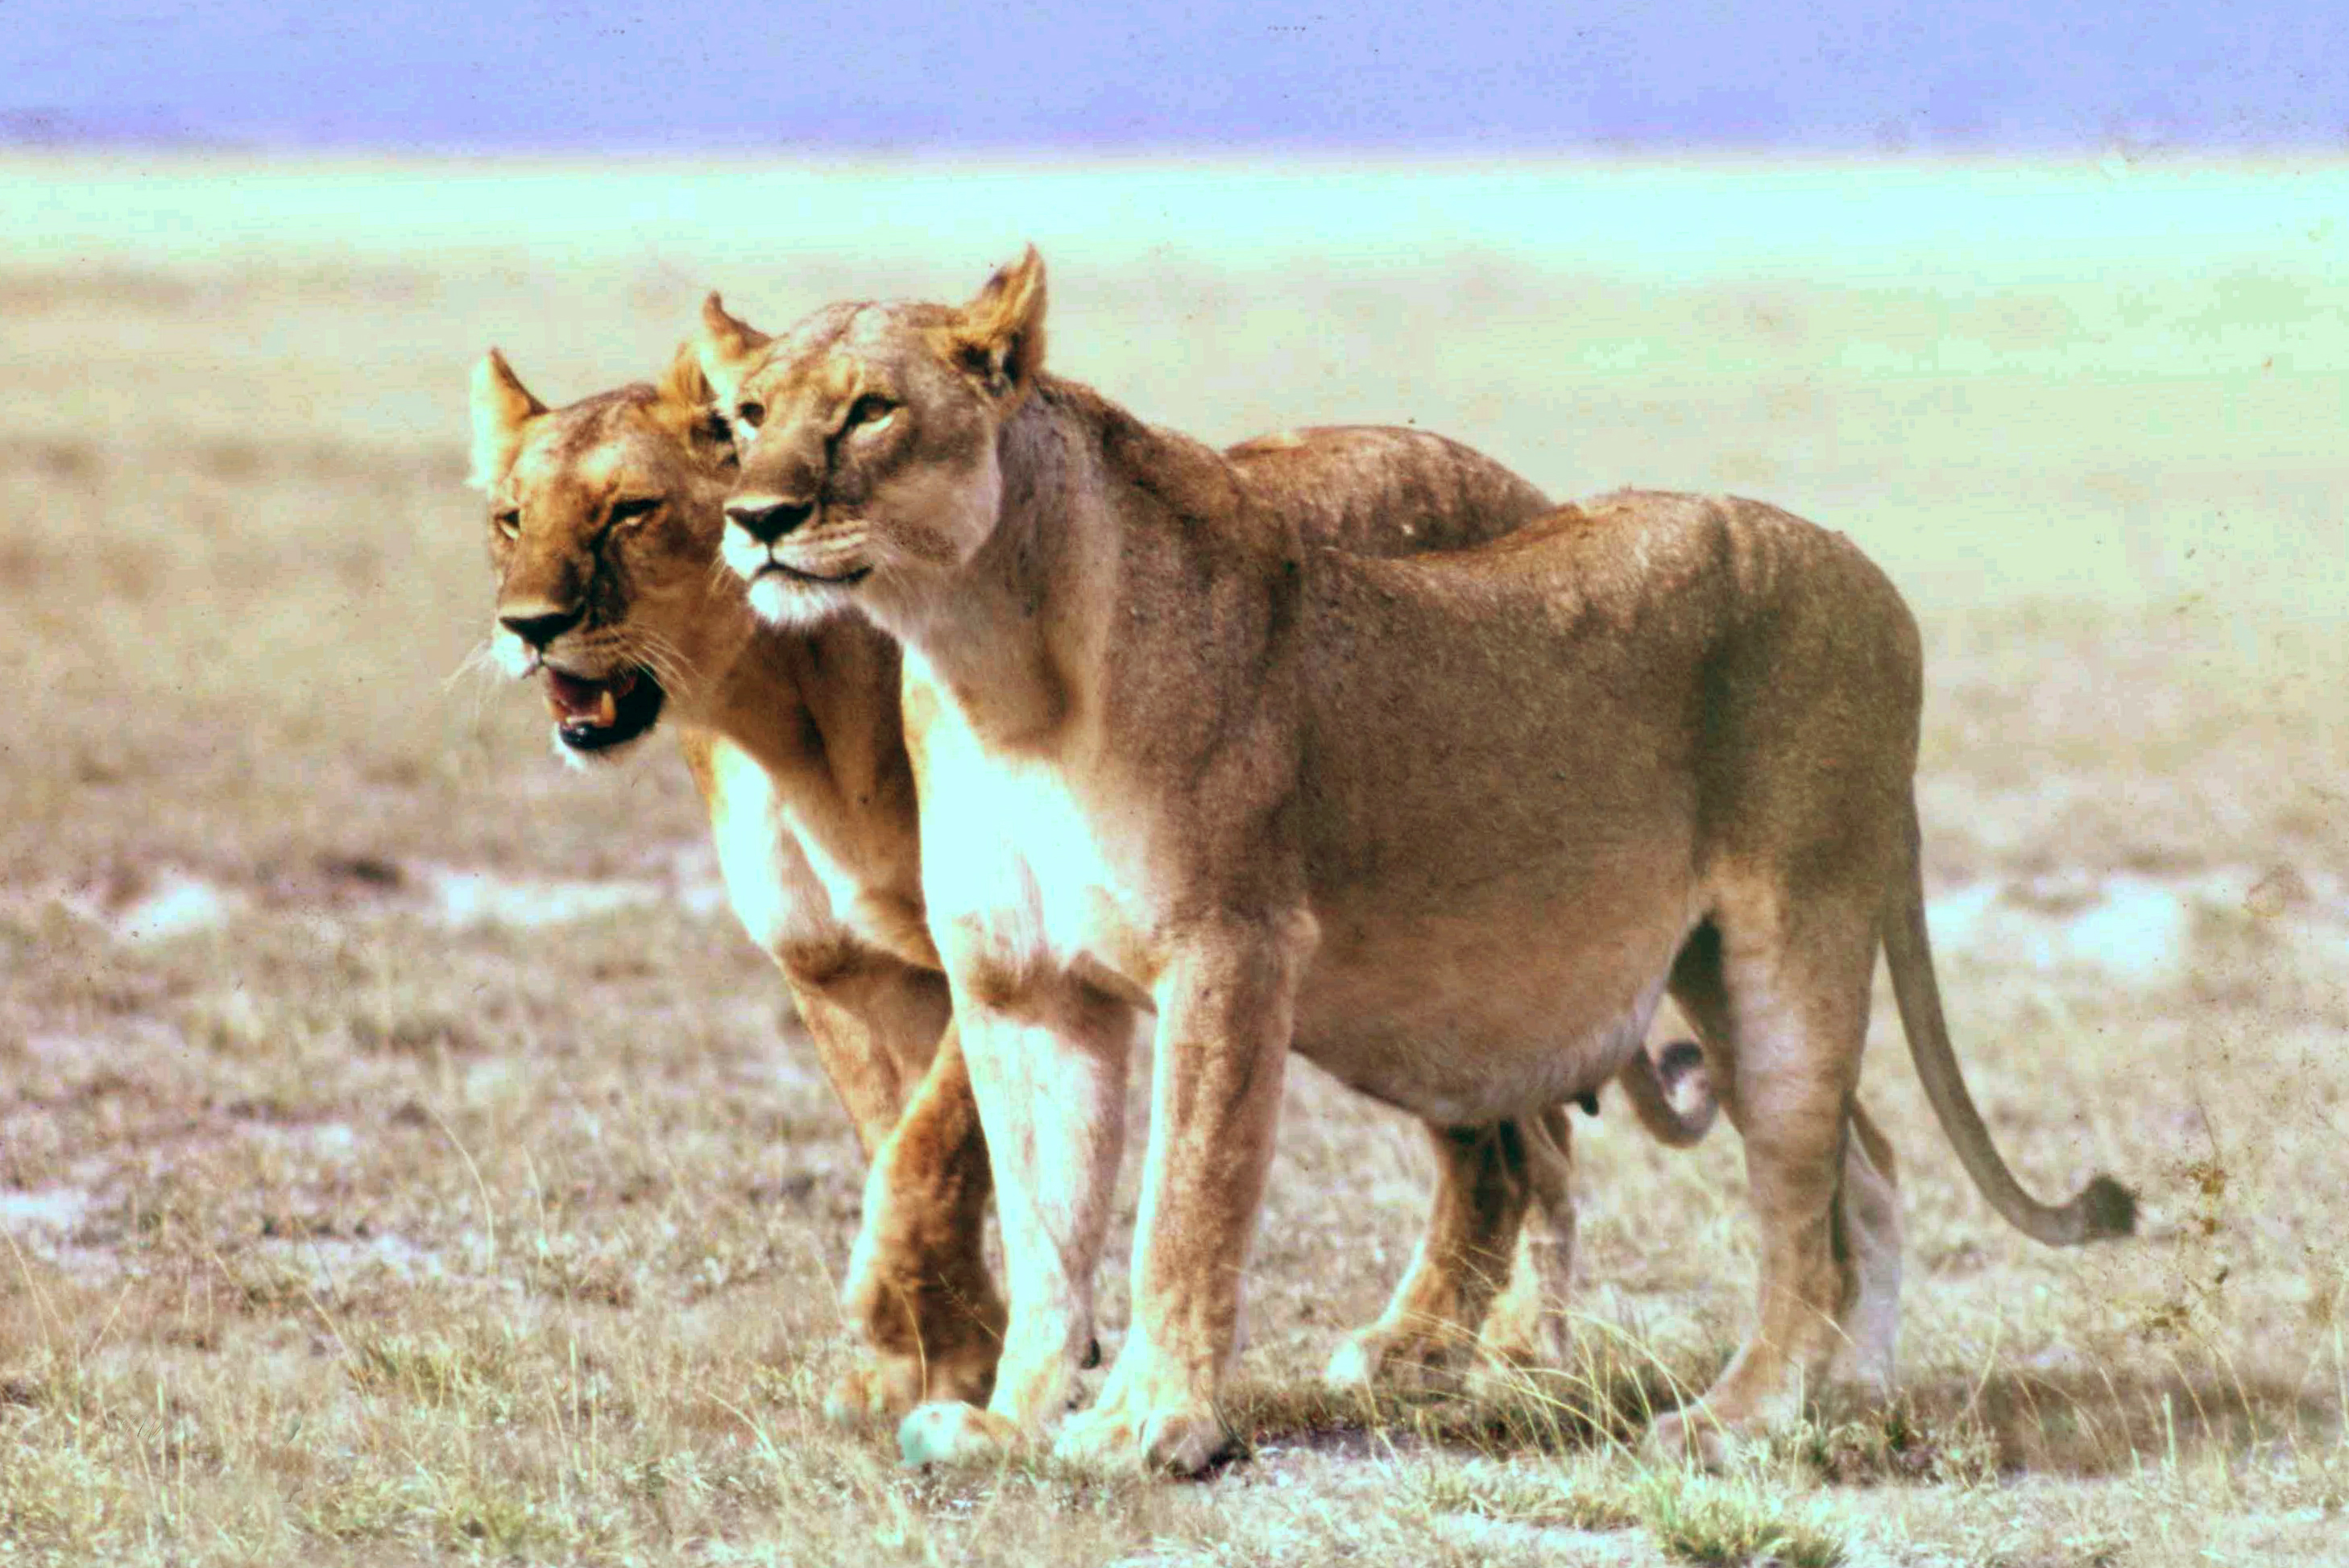 http://upload.wikimedia.org/wikipedia/commons/6/6d/PregnantLioness.jpg